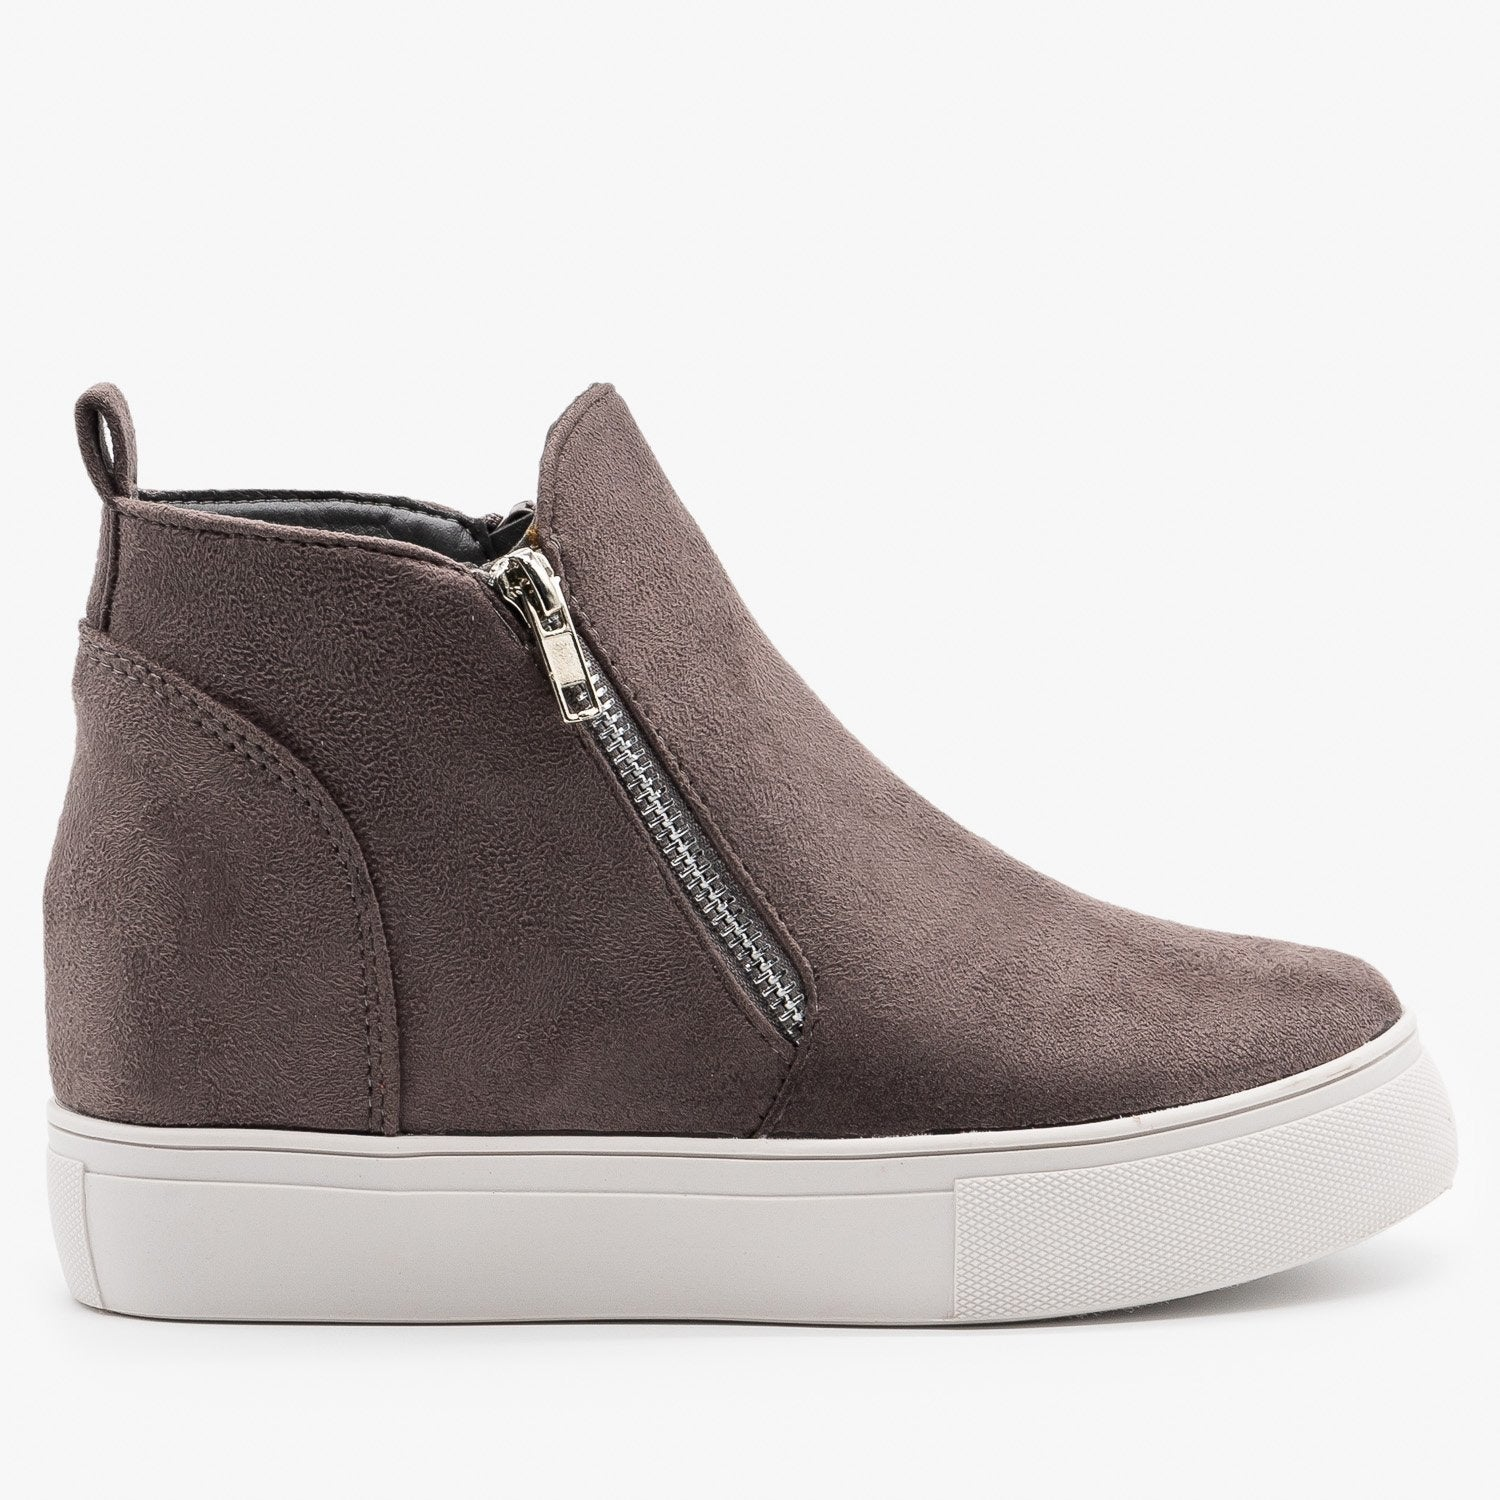 Chic Zippered Inner Wedge Sneakers